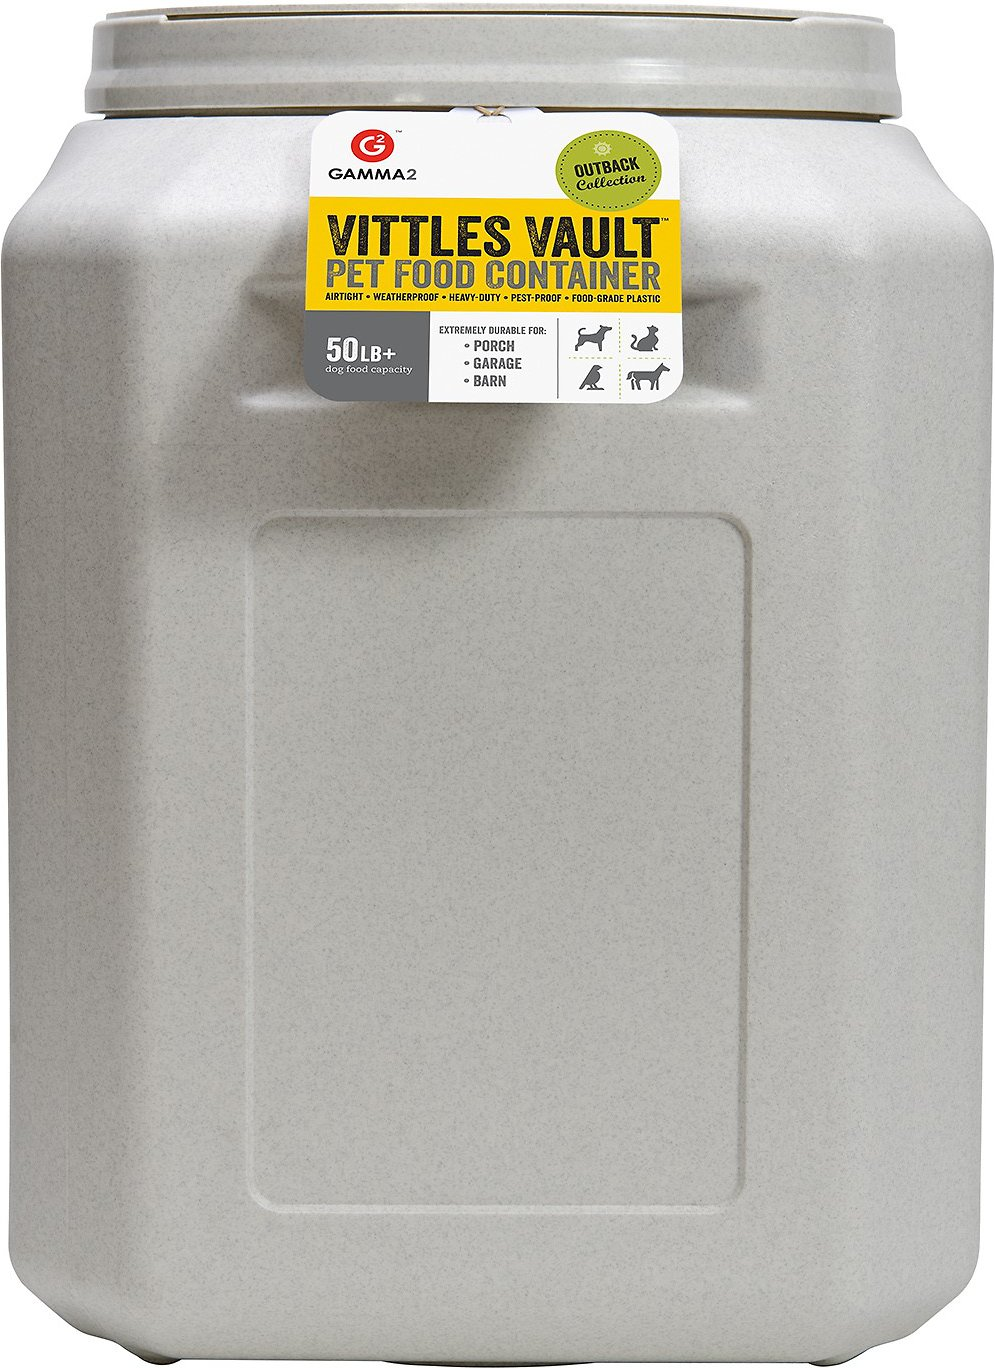 gamma2 vittles vault pet food storage - Dog Food Containers